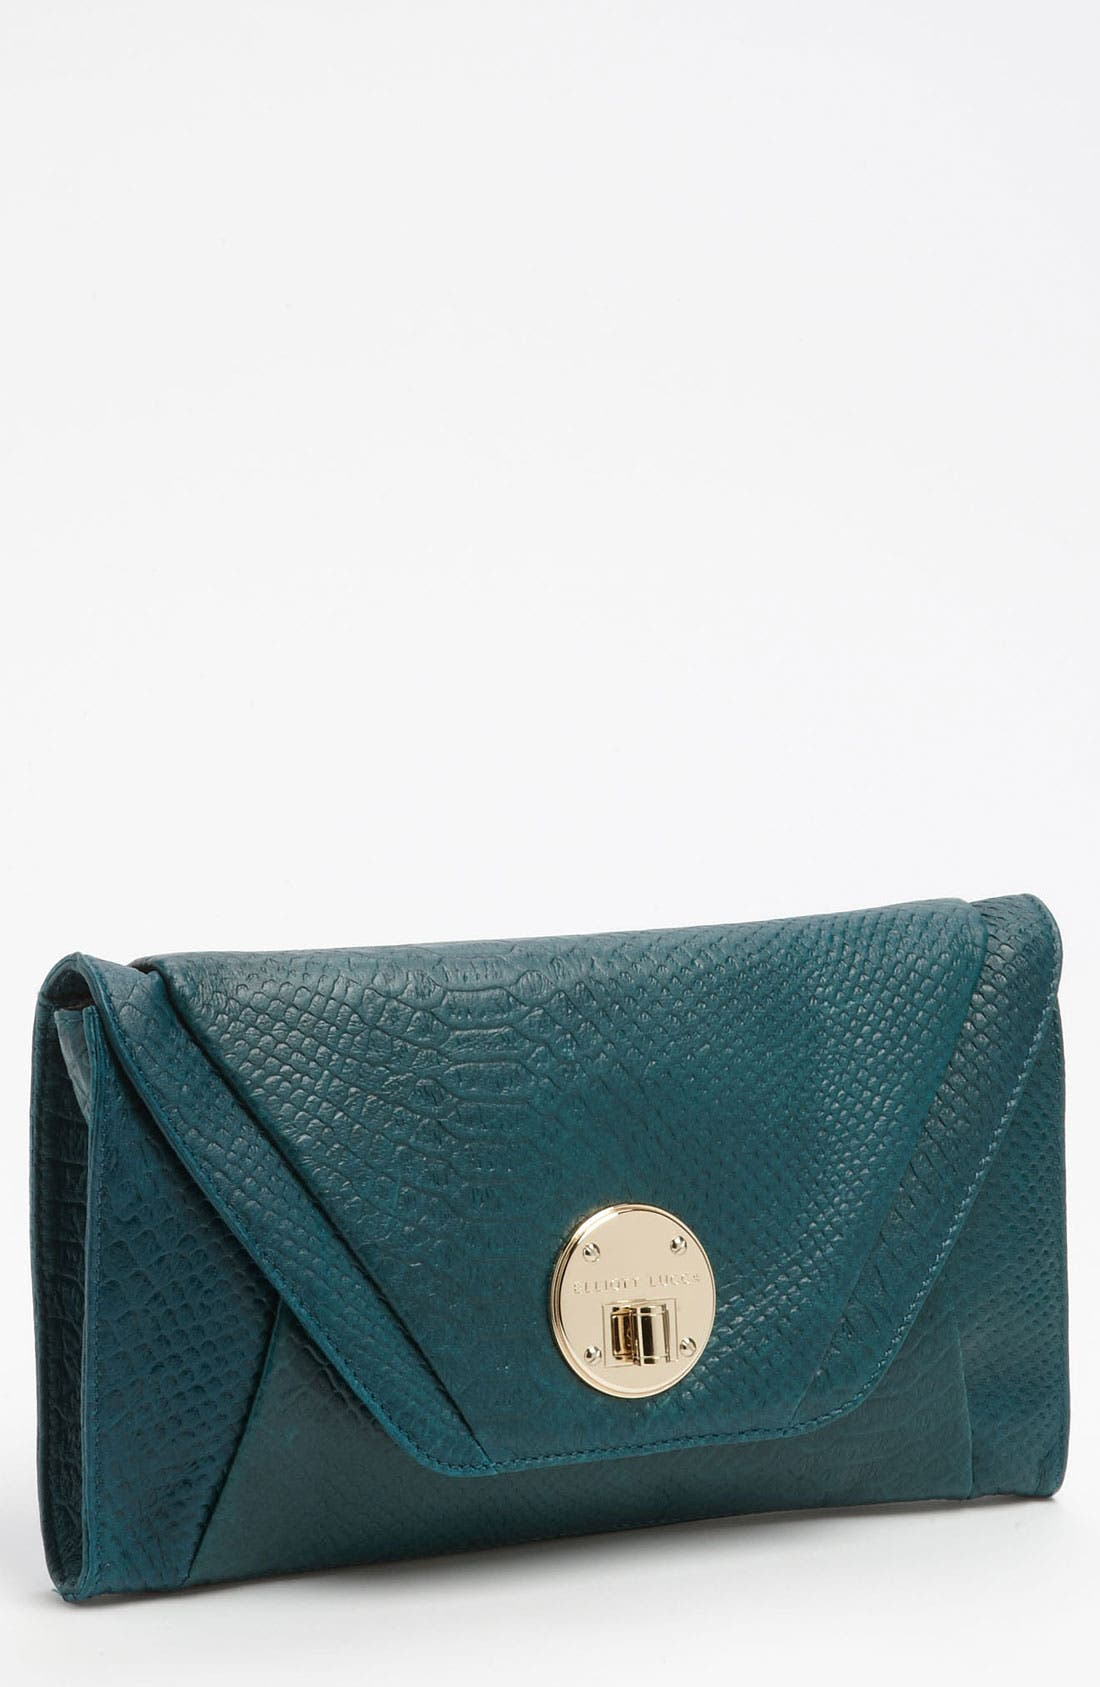 Alternate Image 1 Selected - Elliott Lucca 'Cordoba' Clutch